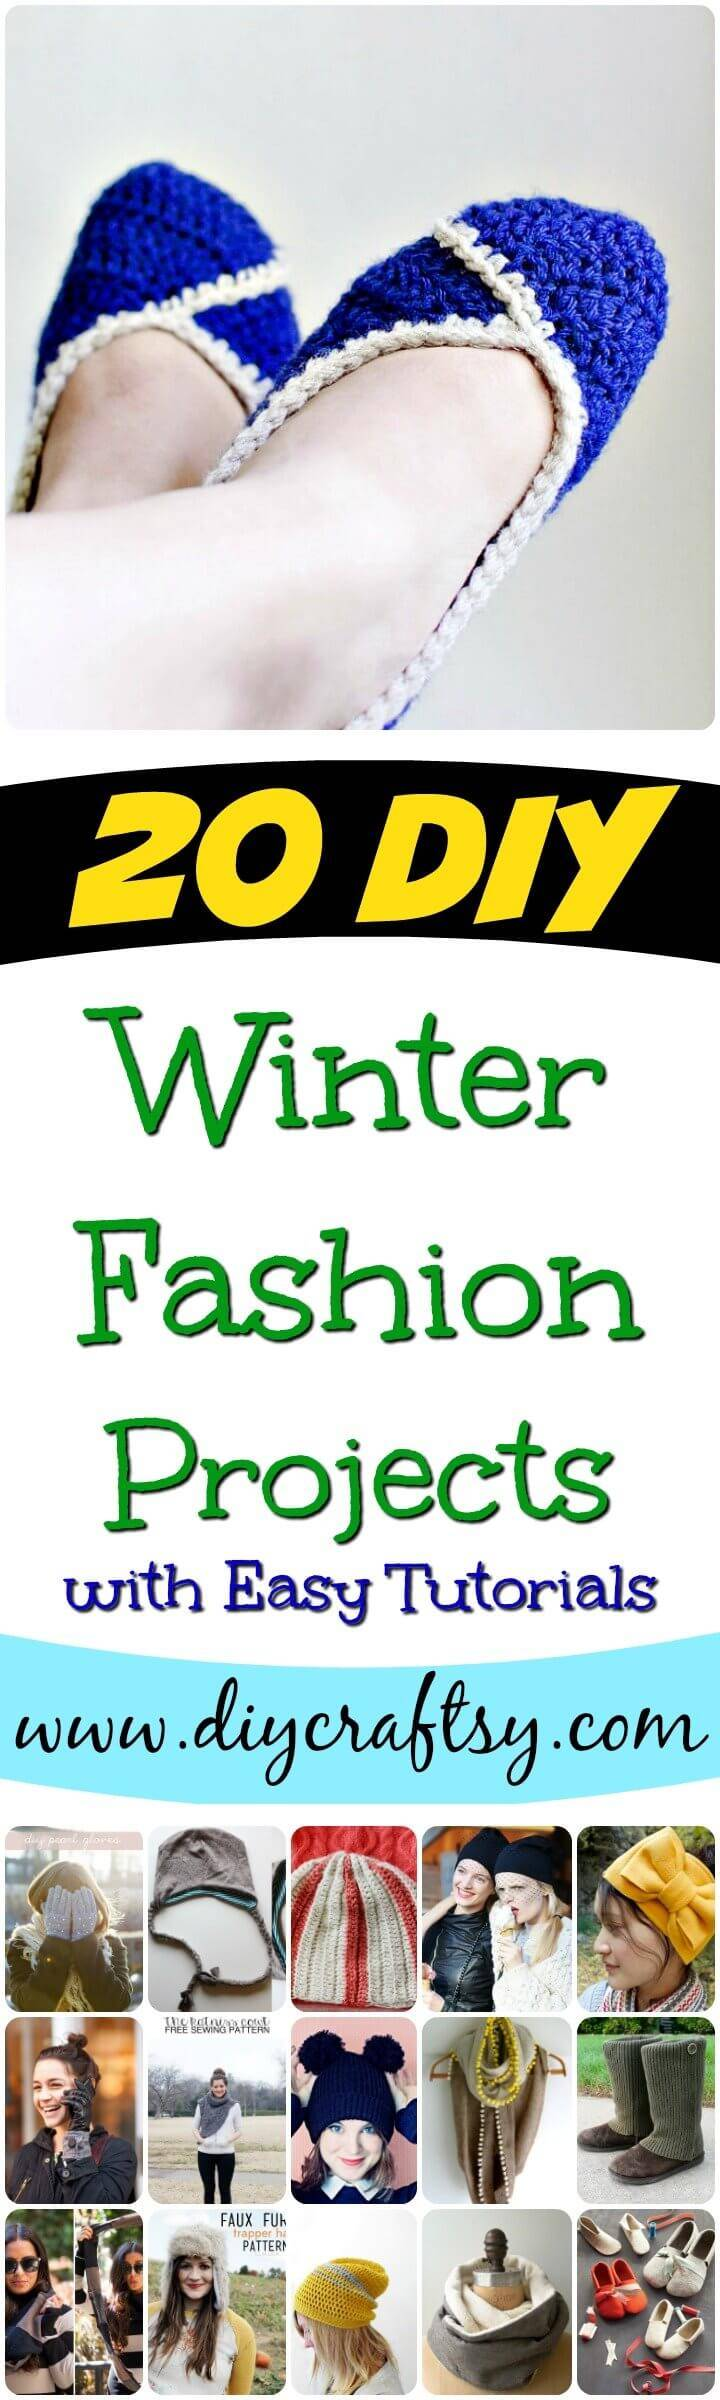 DIY Winter Fashion Projects